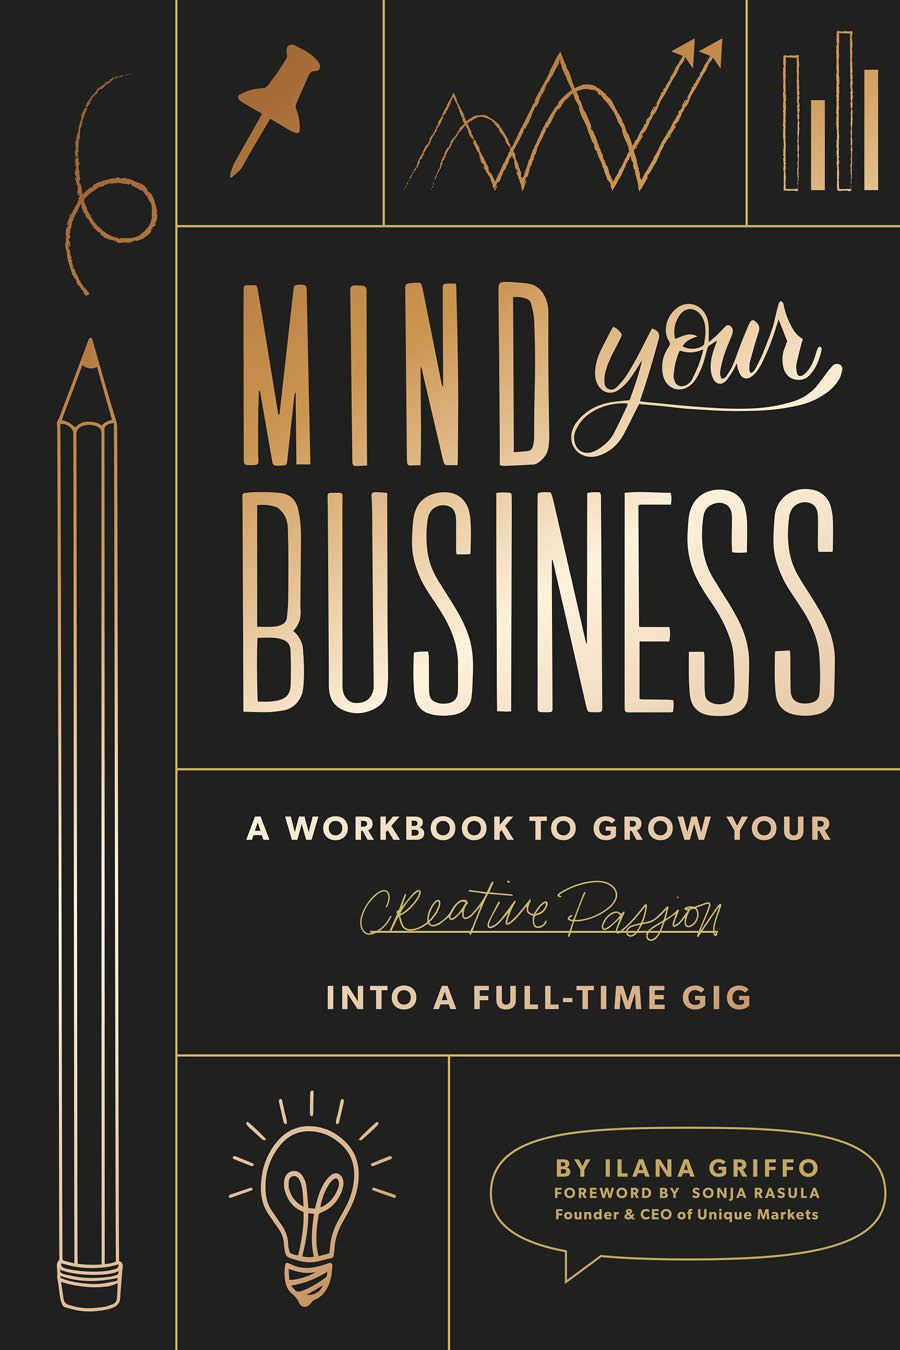 Book cover for Mind Your Business: A Workbook to Grow Your Creative Passion into a Full-Time Gig